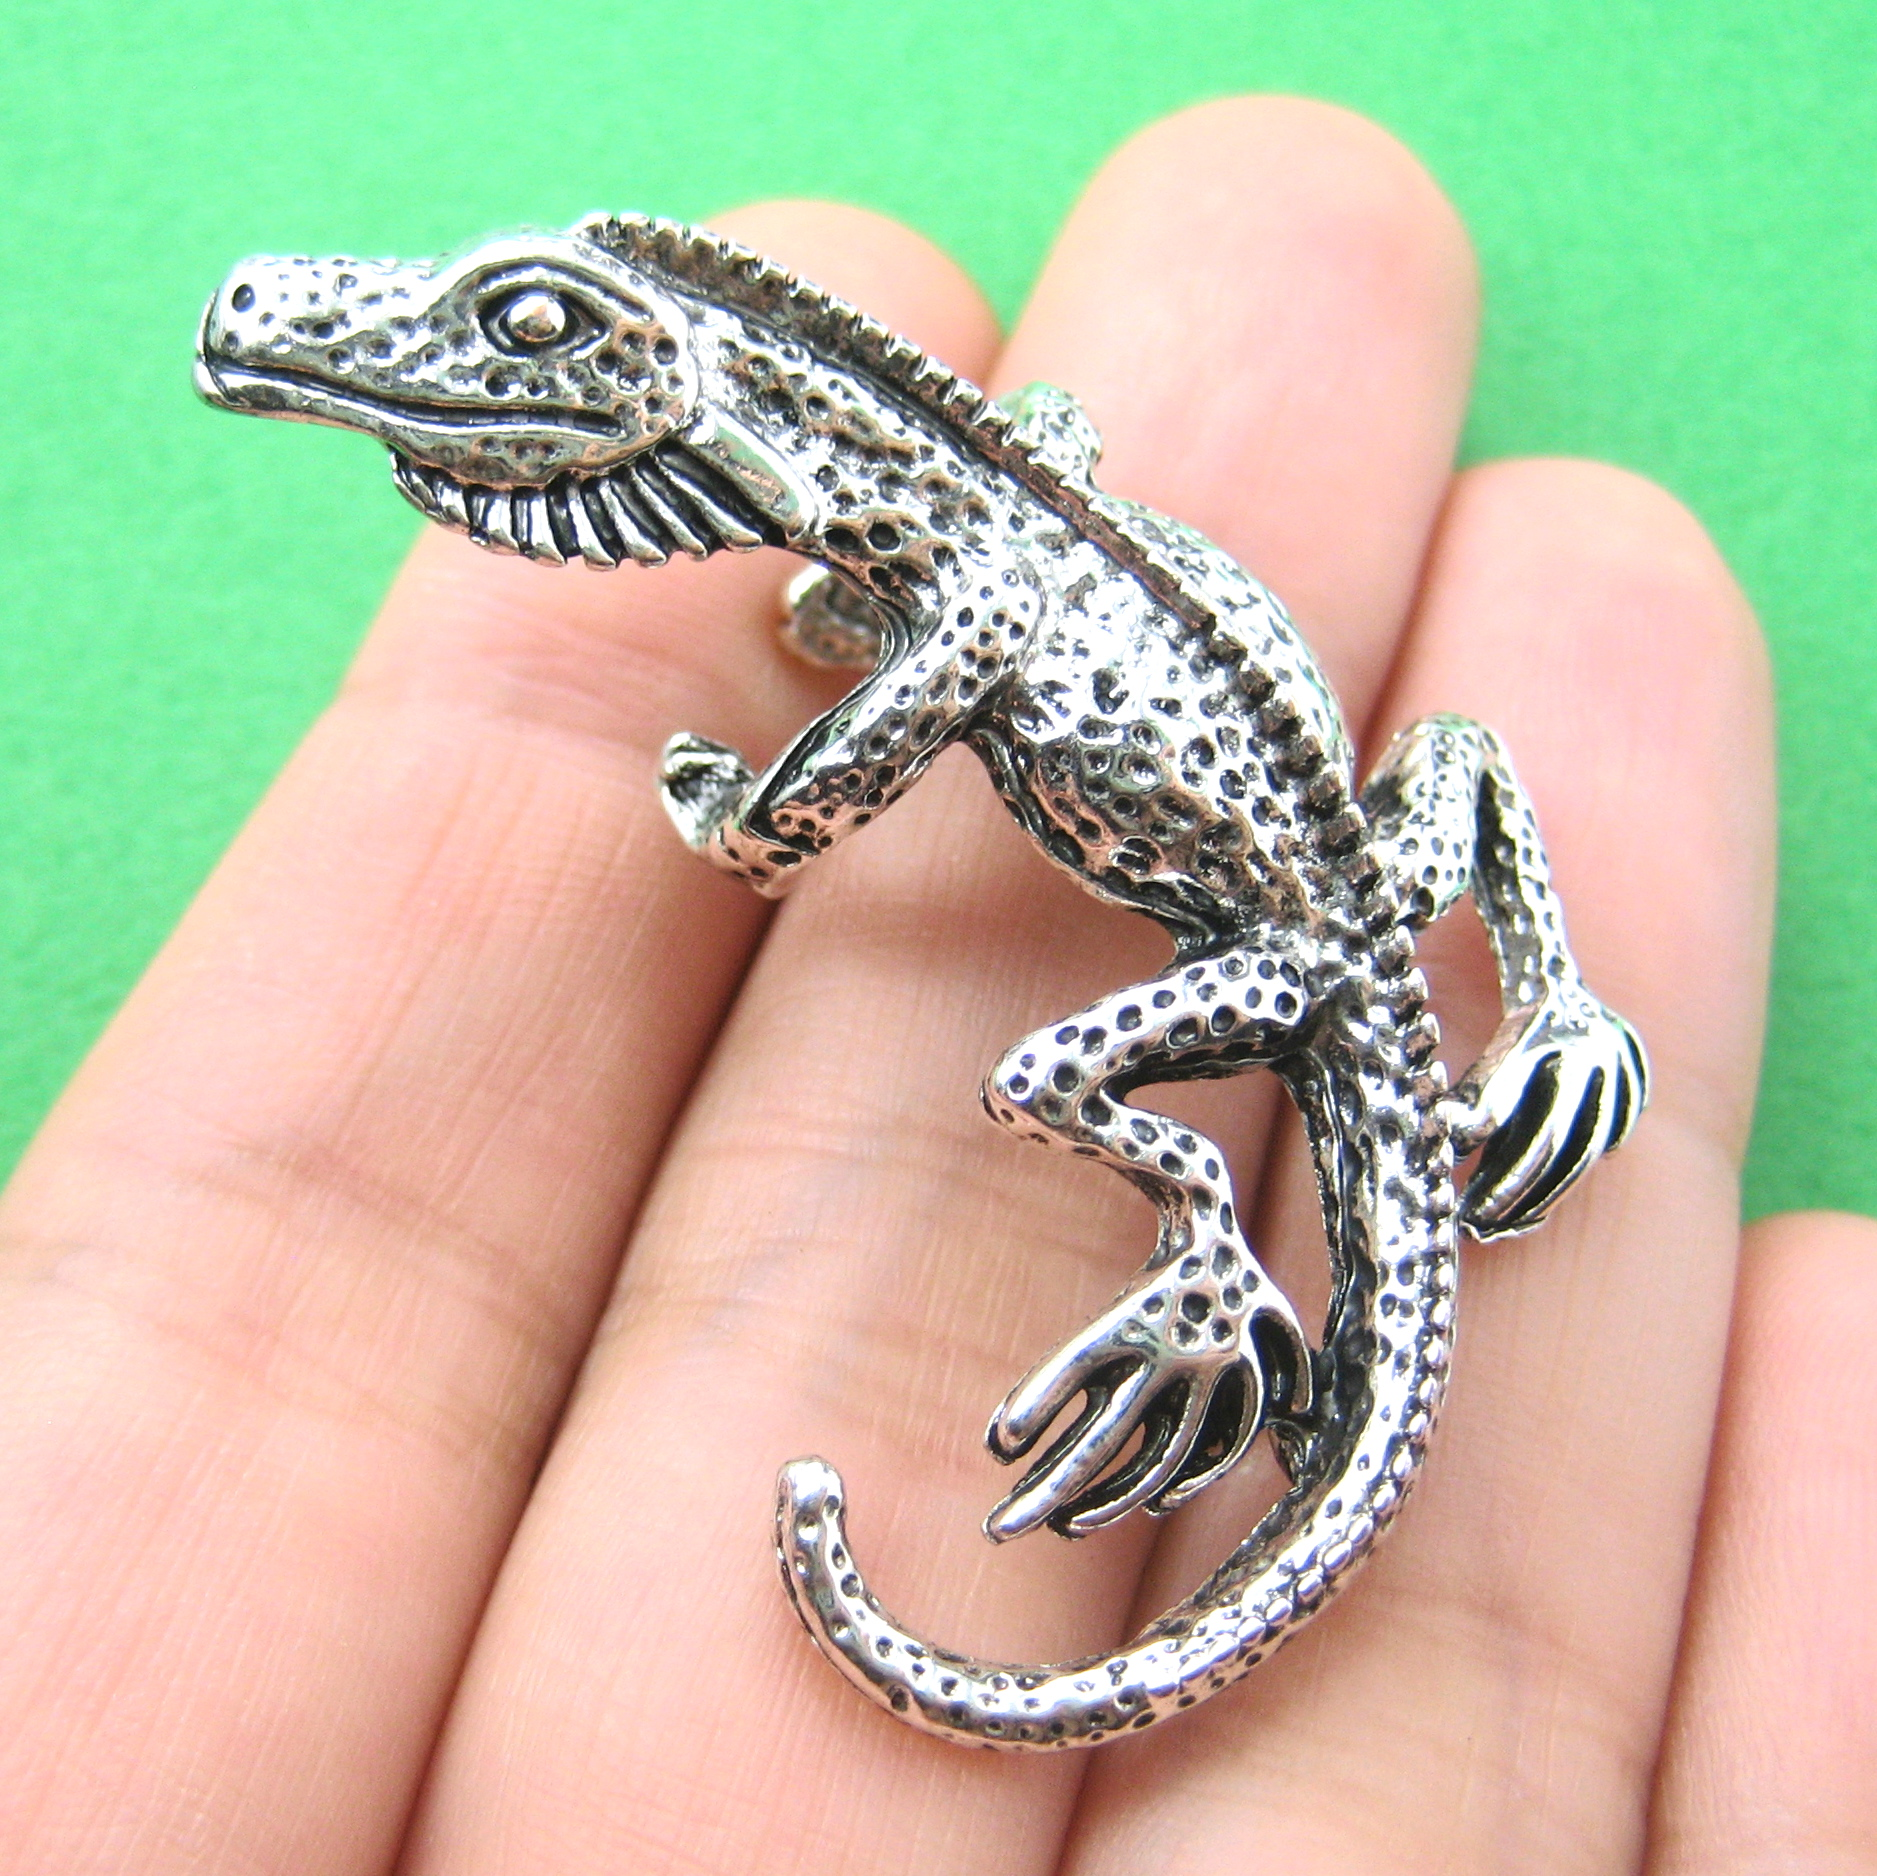 jewelry cgtrader ring li rings iguana print lizard models stl model